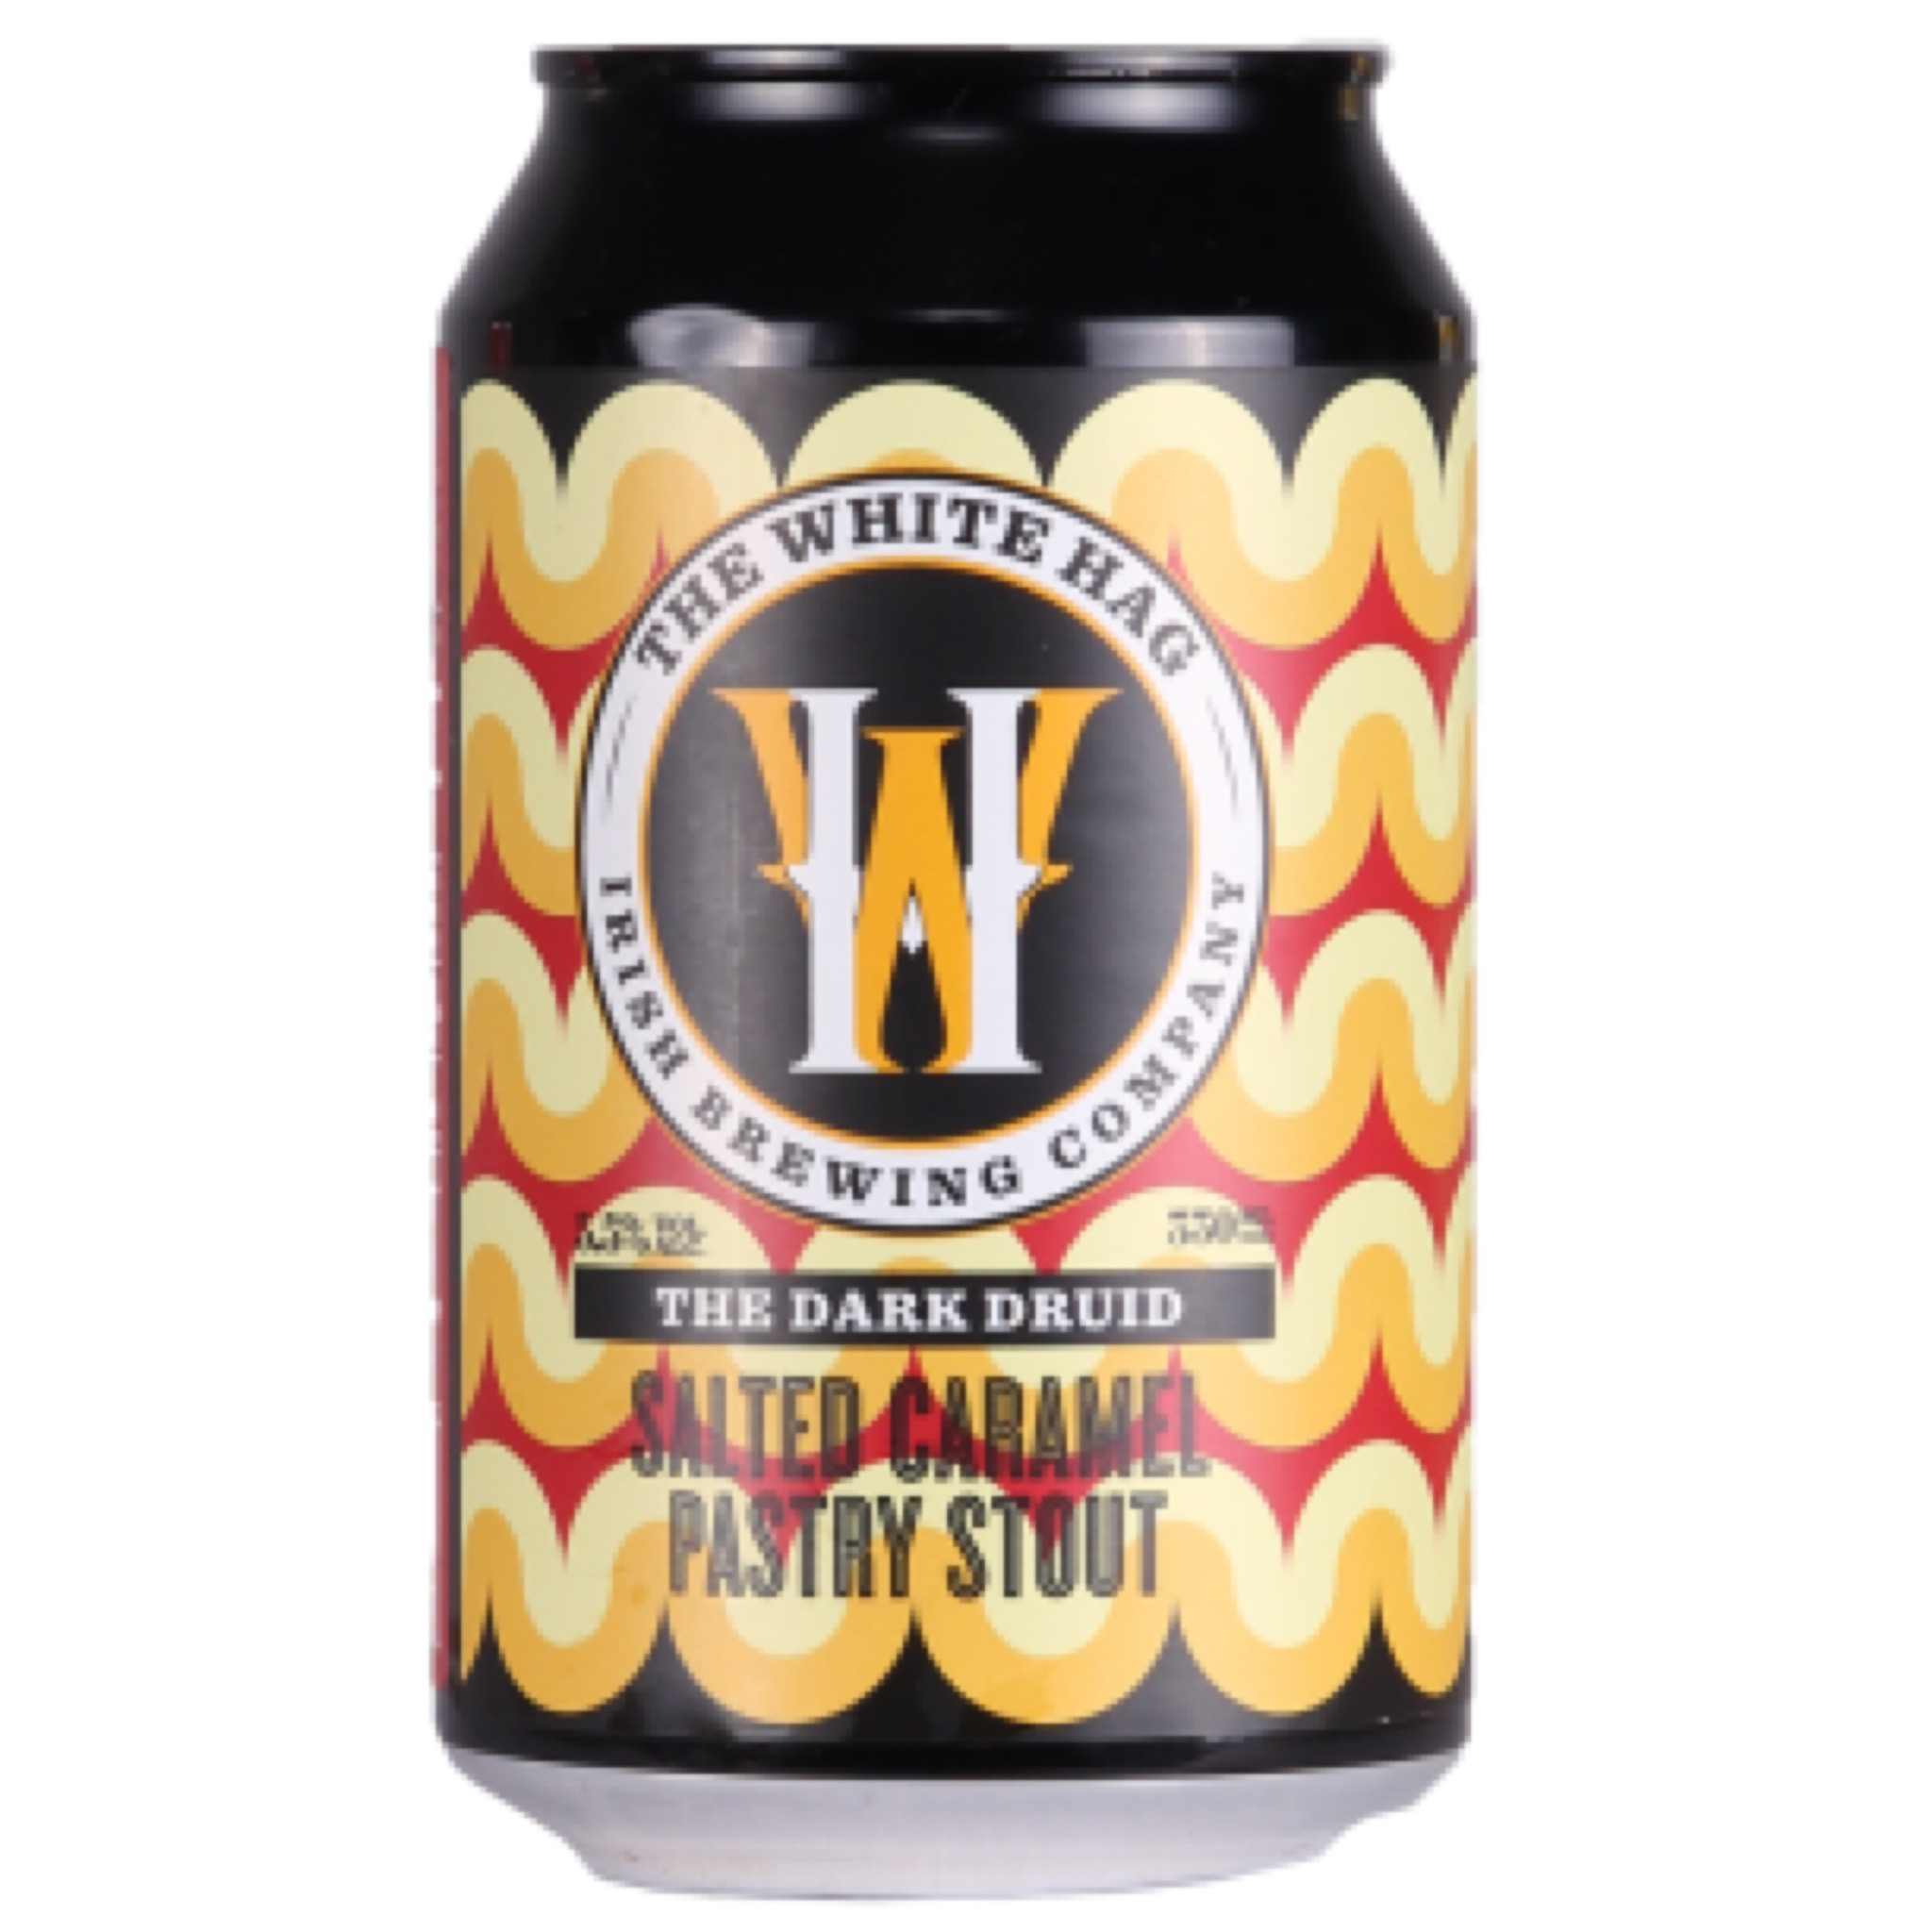 The Dark Druid Salted Caramel Pastry Stout 5.5% 330ml The White Hag Brewing